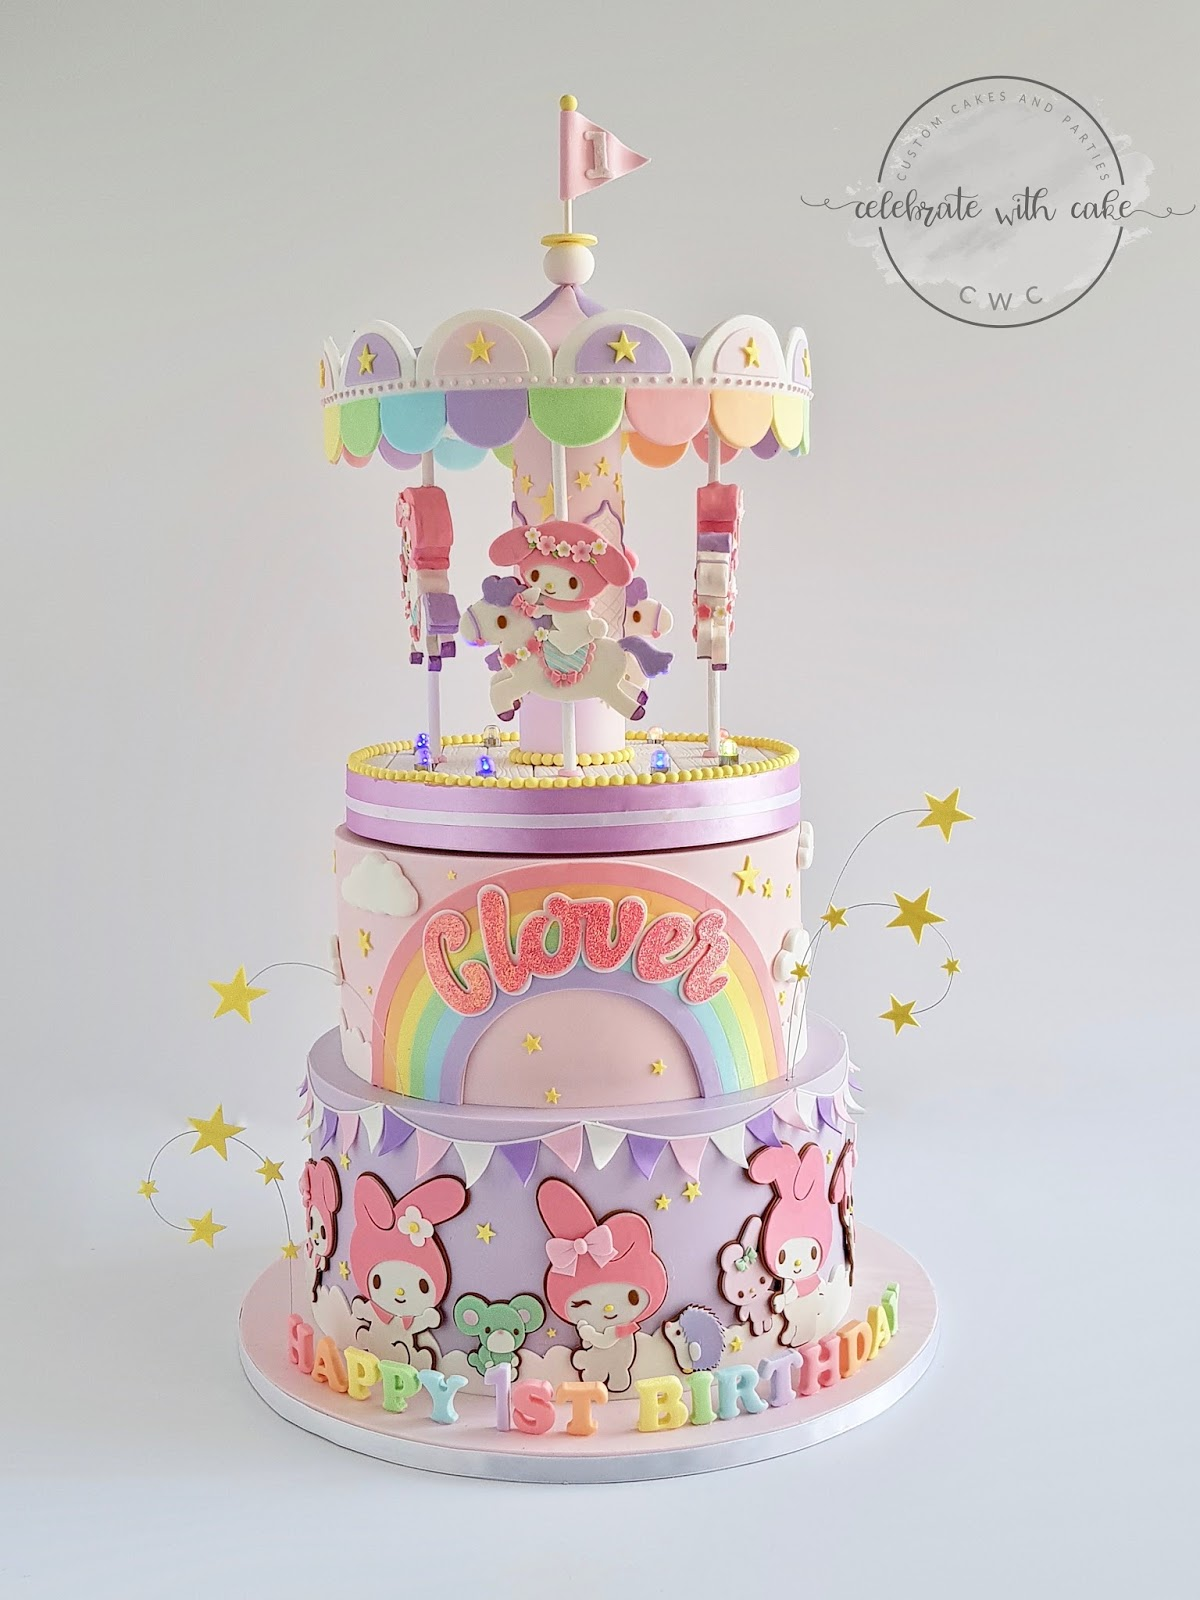 Celebrate With Cake Pastel My Melody Rotating Carousel 1st Birthday